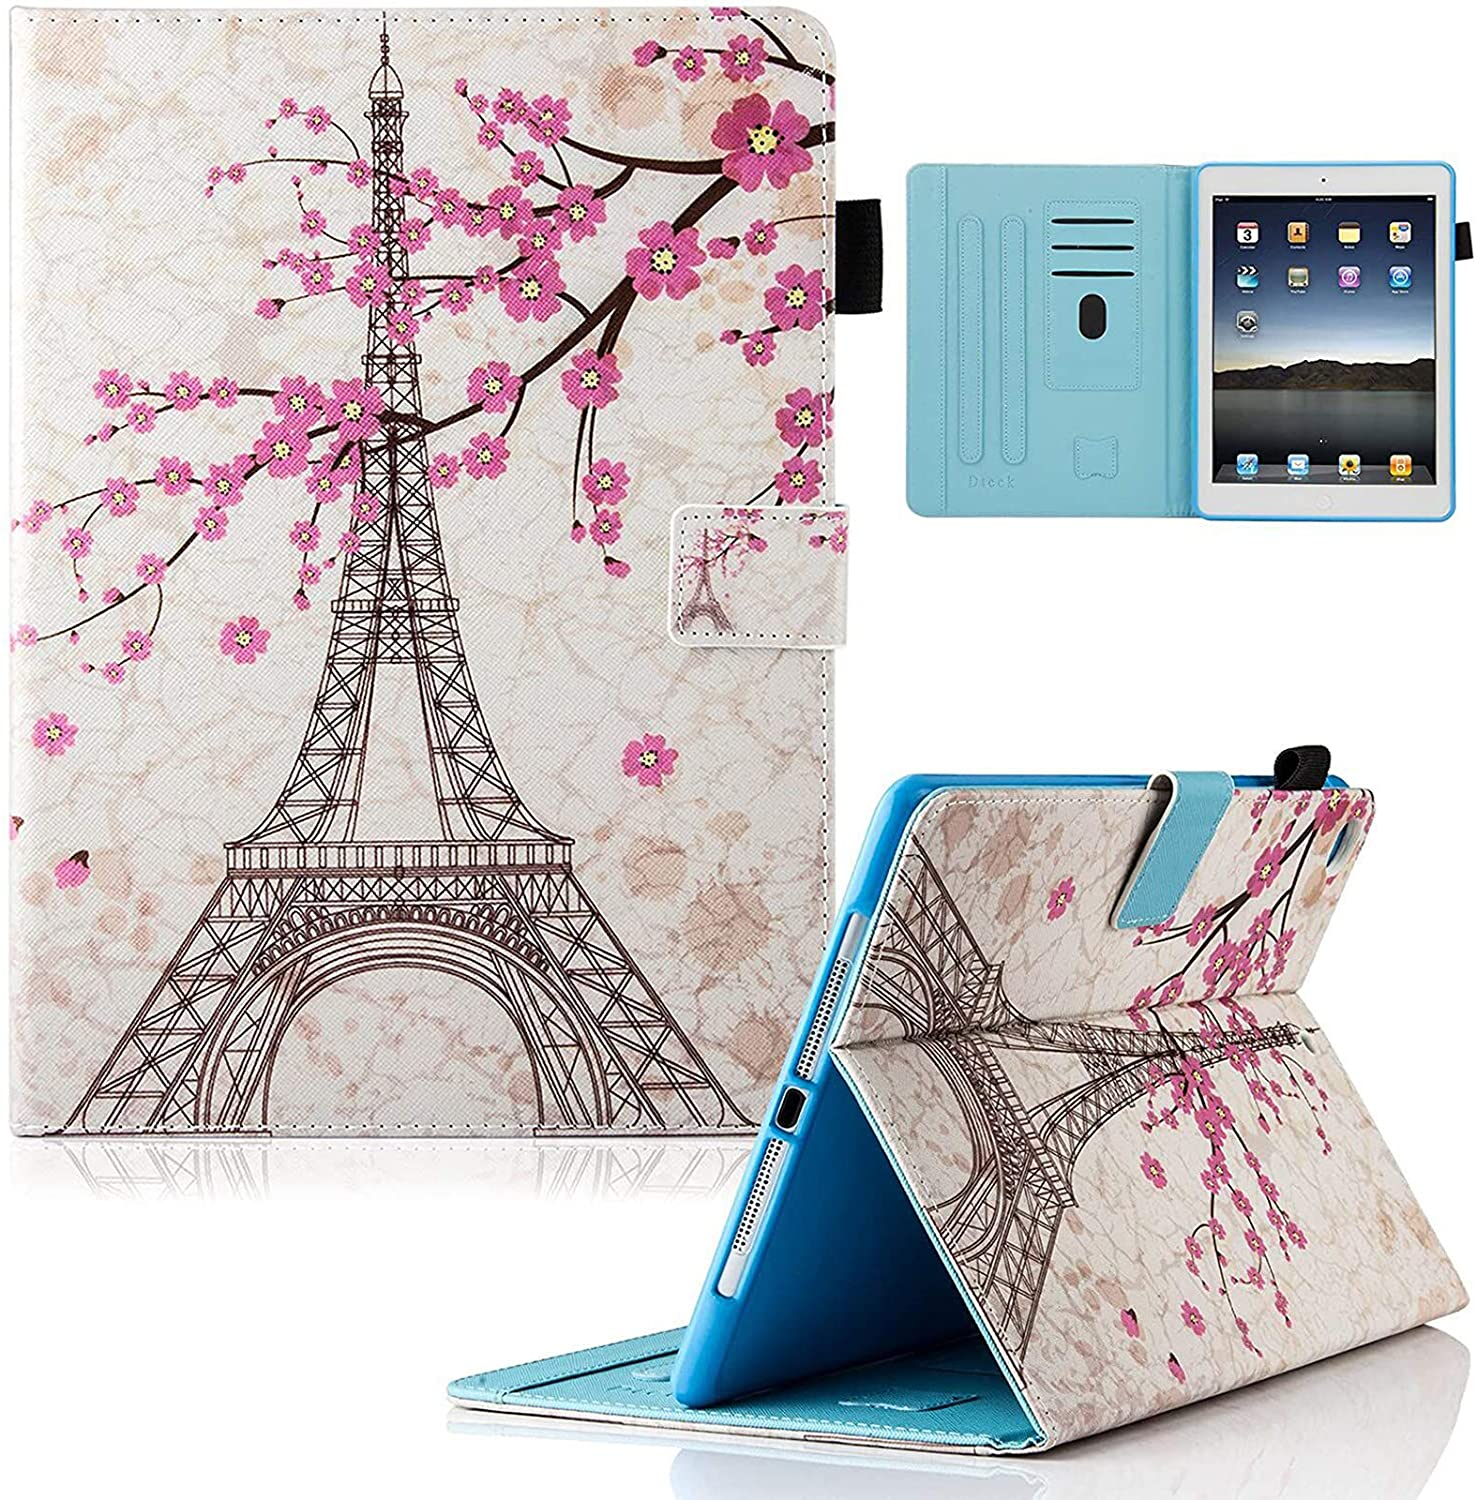 iPad 9.7 inch 2017 Case, iPad Air Case, iPad Air 2 Case, Dteck PU Leather Folio Smart Cover Stand Wallet Case with Auto Sleep Wake for iPad 2017 iPad 9.7 Inch,iPad Air 1, iPad Air 2, Eiffel Tower